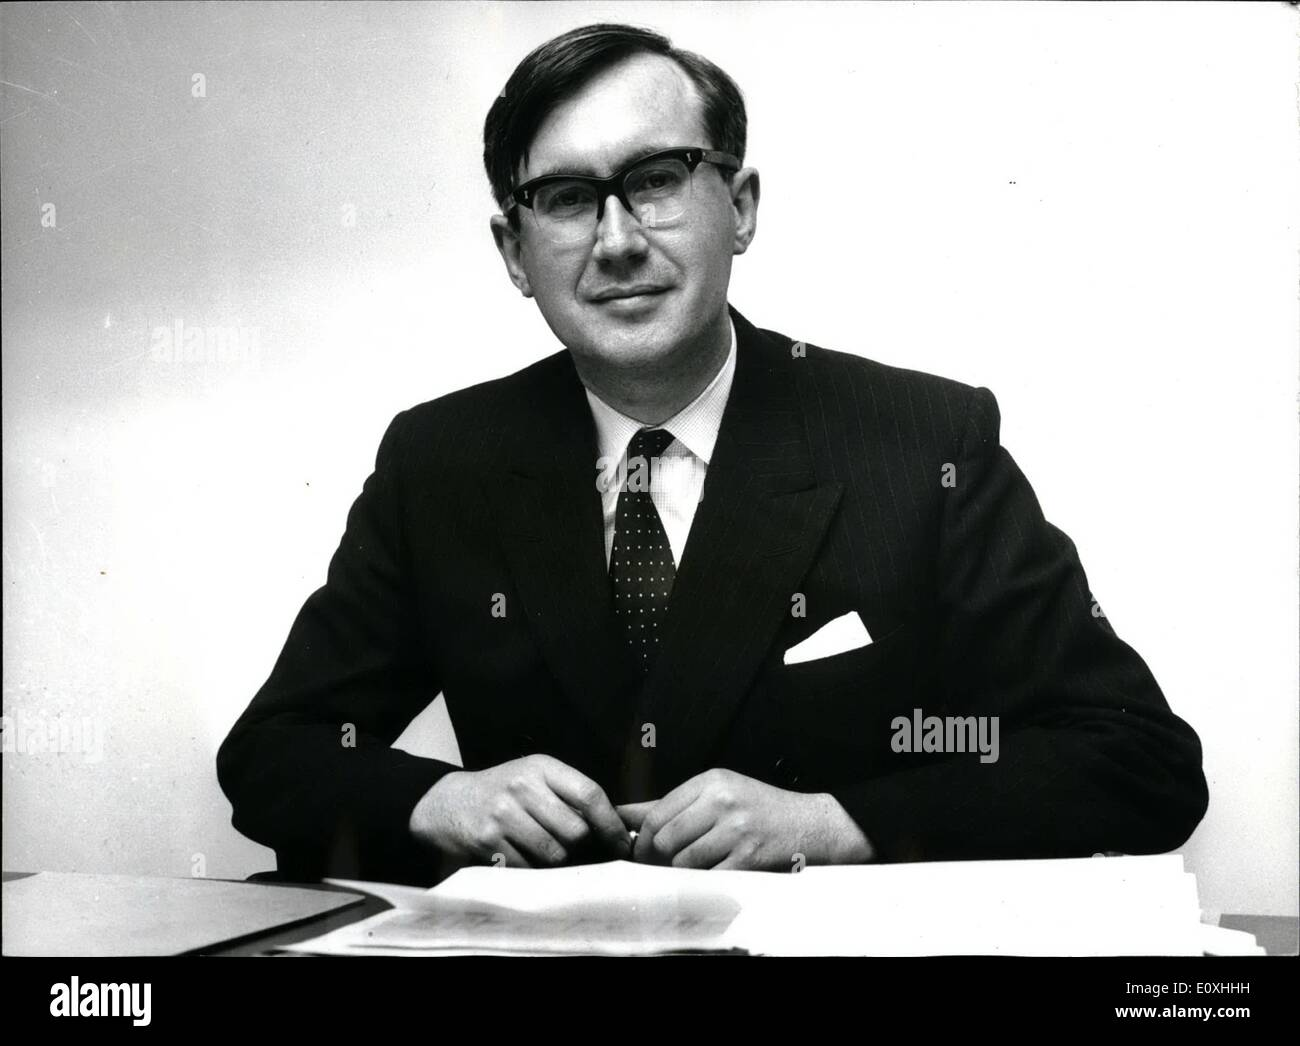 Jan. 01, 1967 - New Editor Of The Times; Mr. William Rees-Mogg, 38 year old deputy editor of the Sunday Times, was yesterday appointed editor of The Times. The new appointment was announced yesterday by Times Newspapers Ltd., who now own The Times and The Sunday Times. Photo shows Mr. William Rees-Mogg pictured today in the editor's office at The Times today. - Stock Image